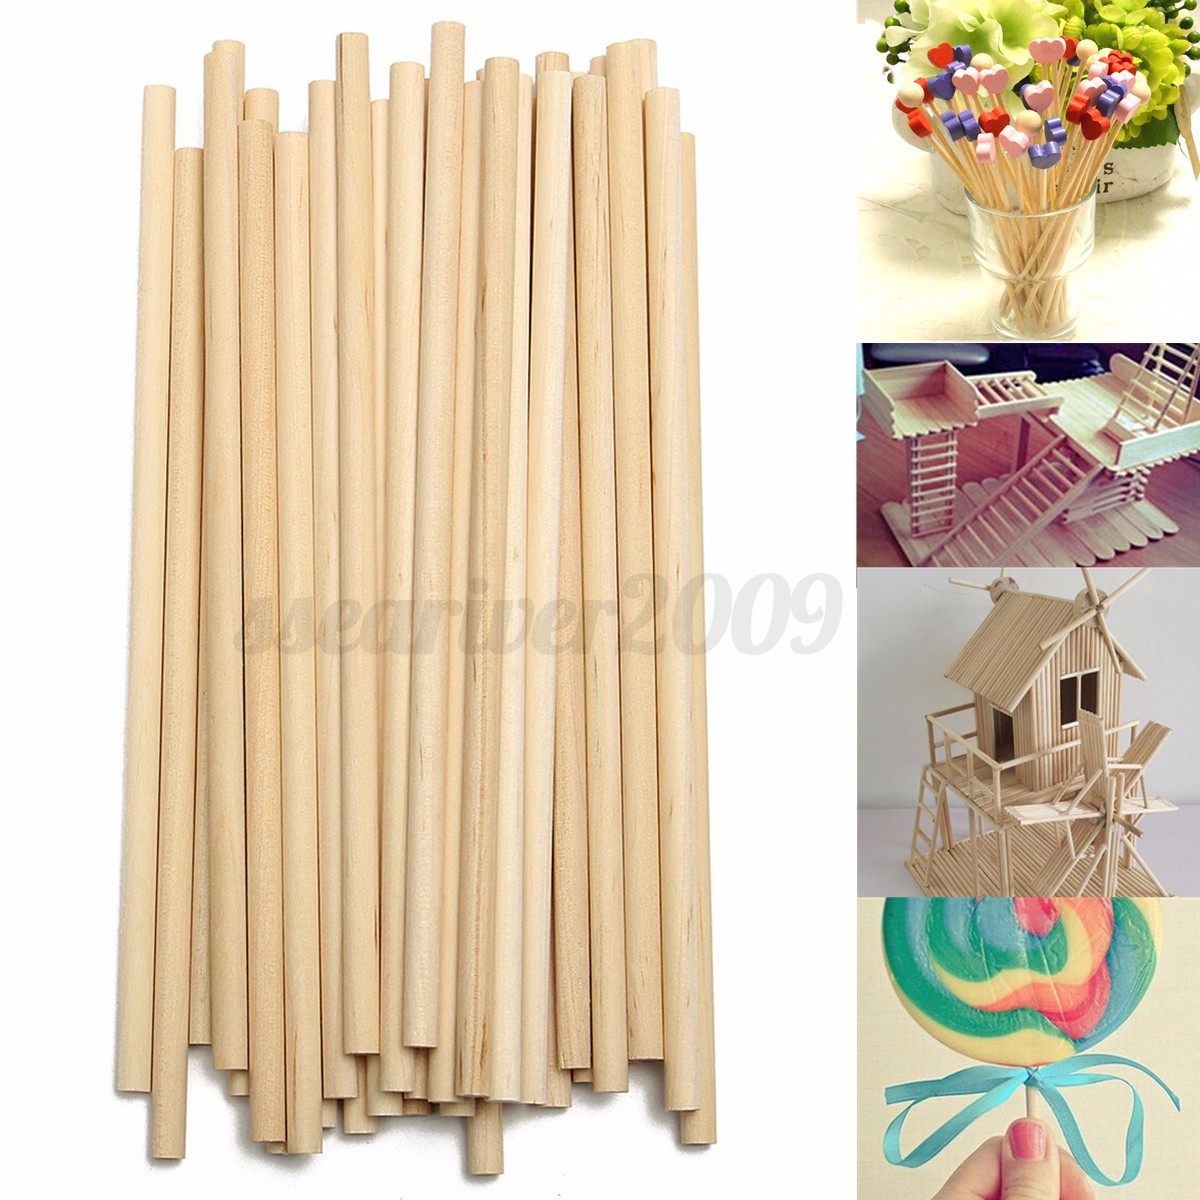 50pcs 150mm round wooden lollipop lolly sticks cake dowels for Wooden dowels for crafts